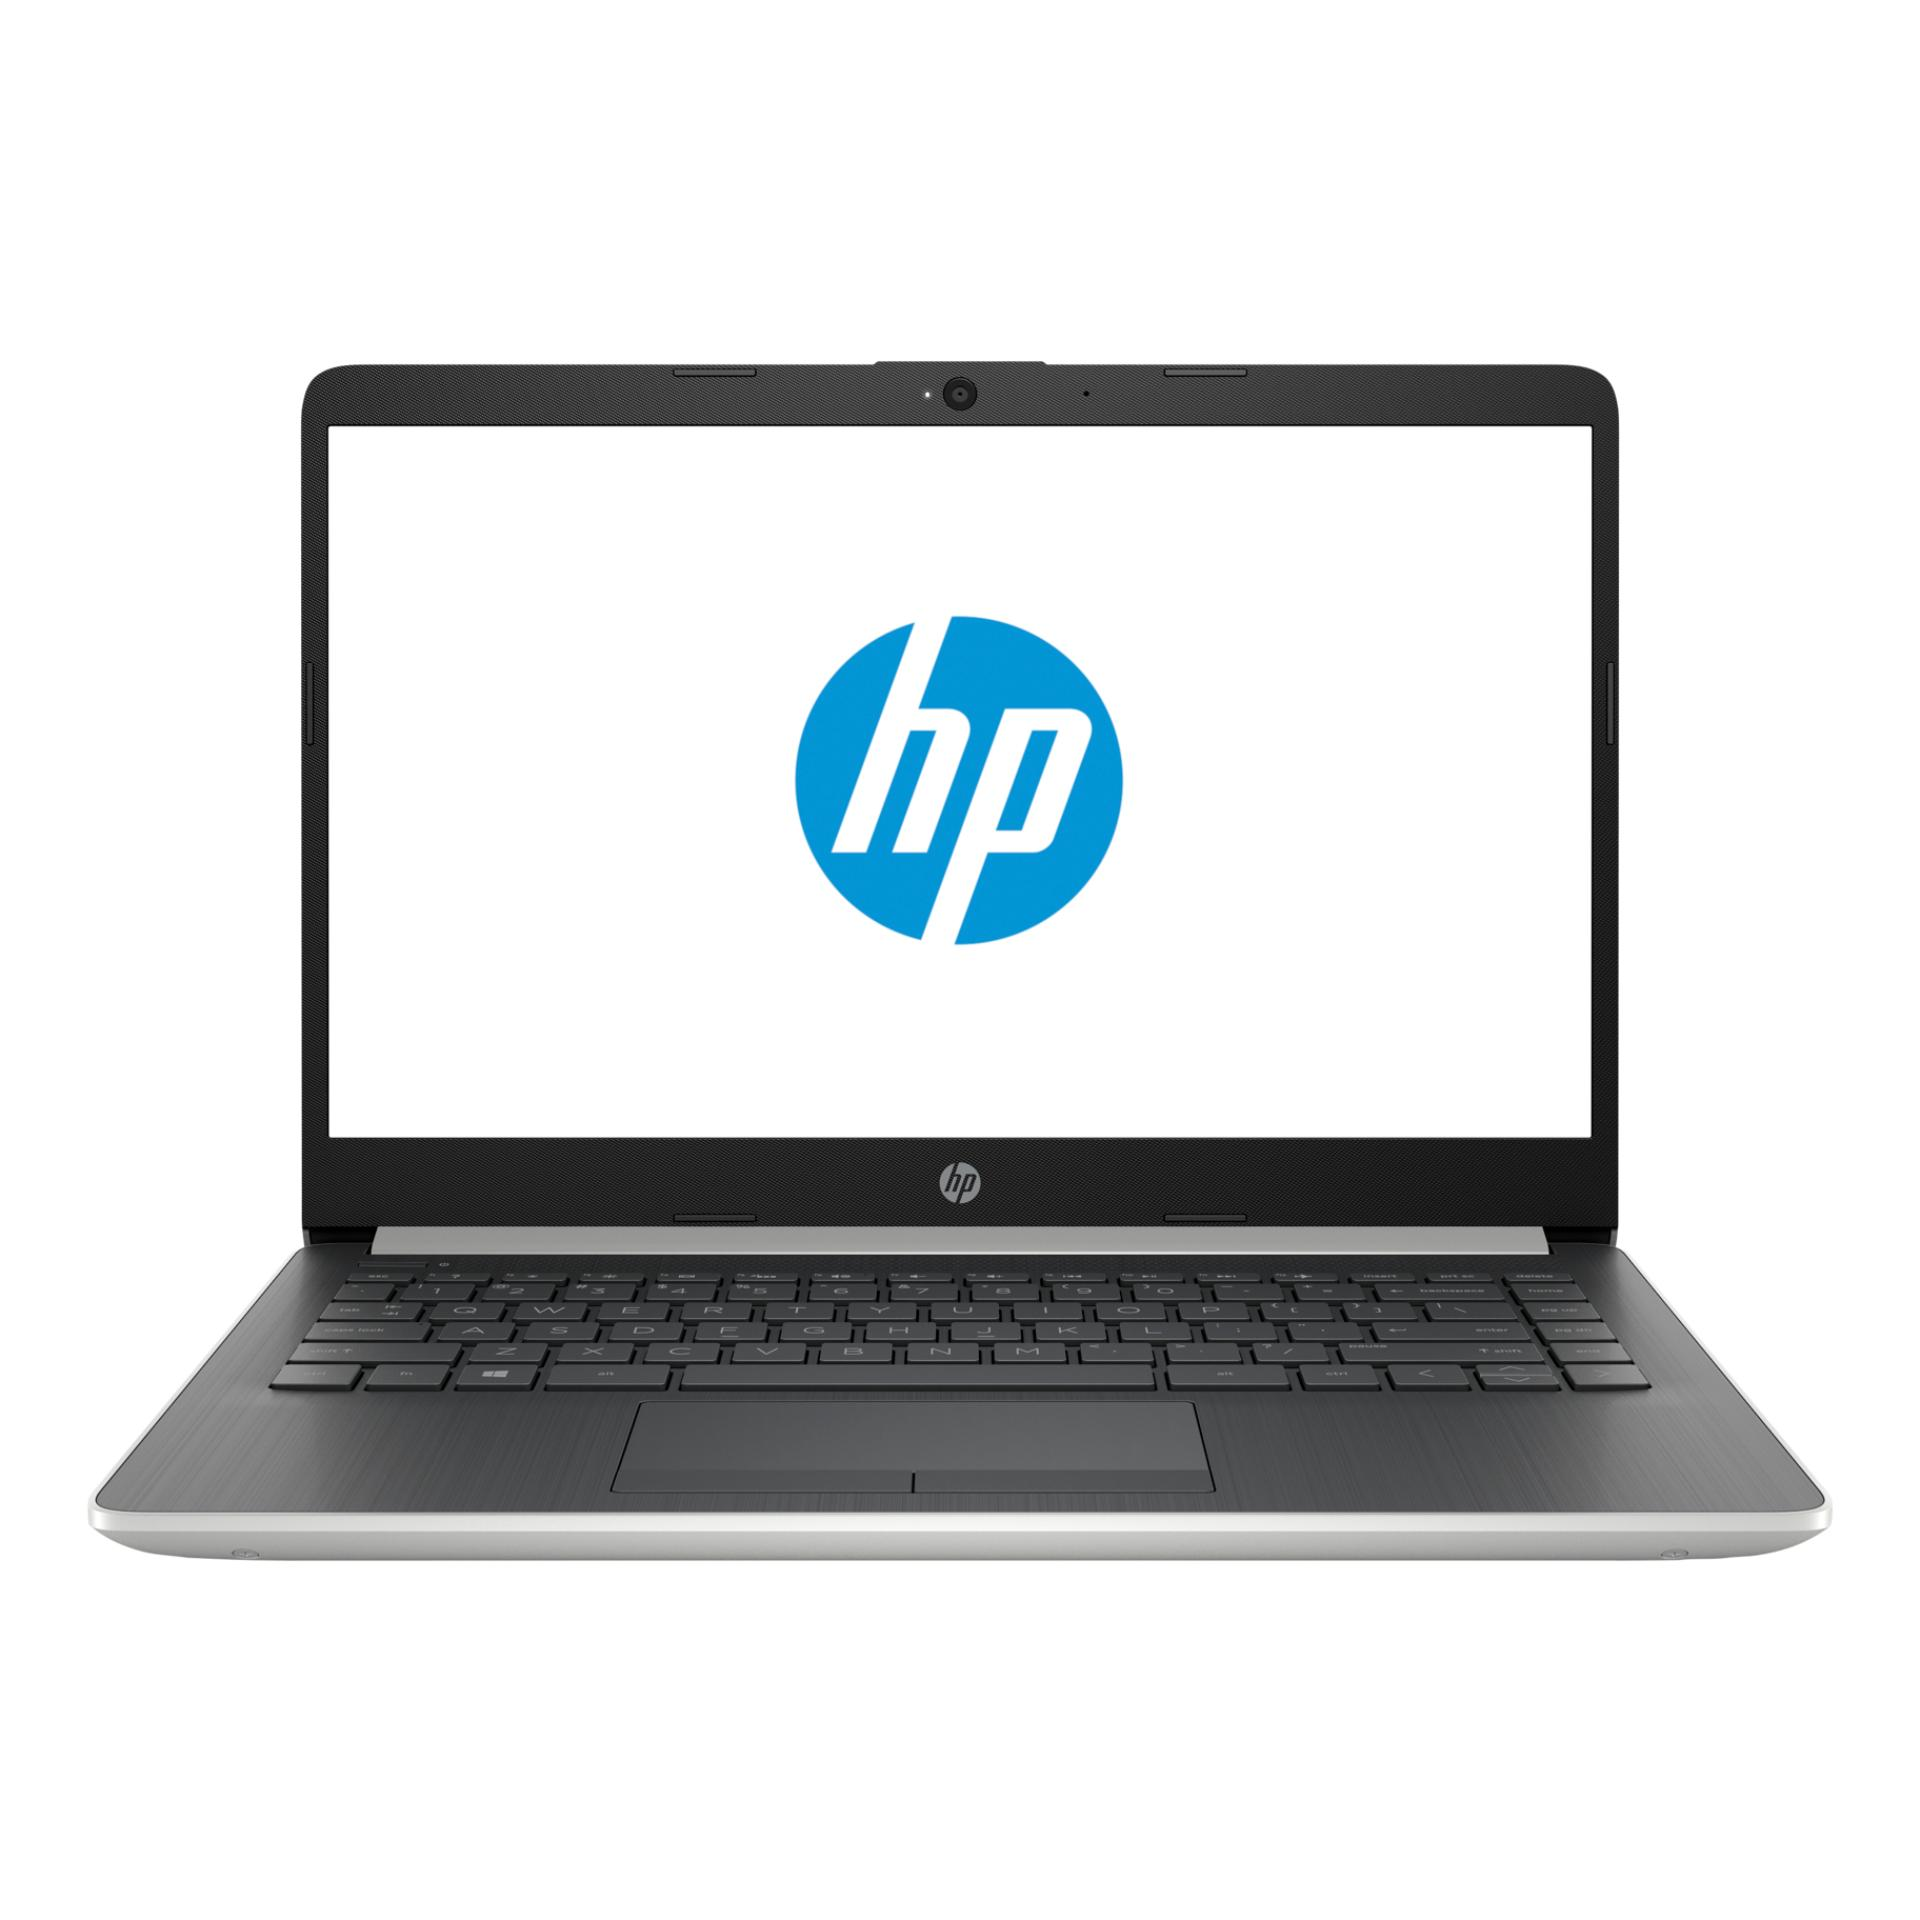 HP Laptop 14s-df0004TU (Online Exclusive)